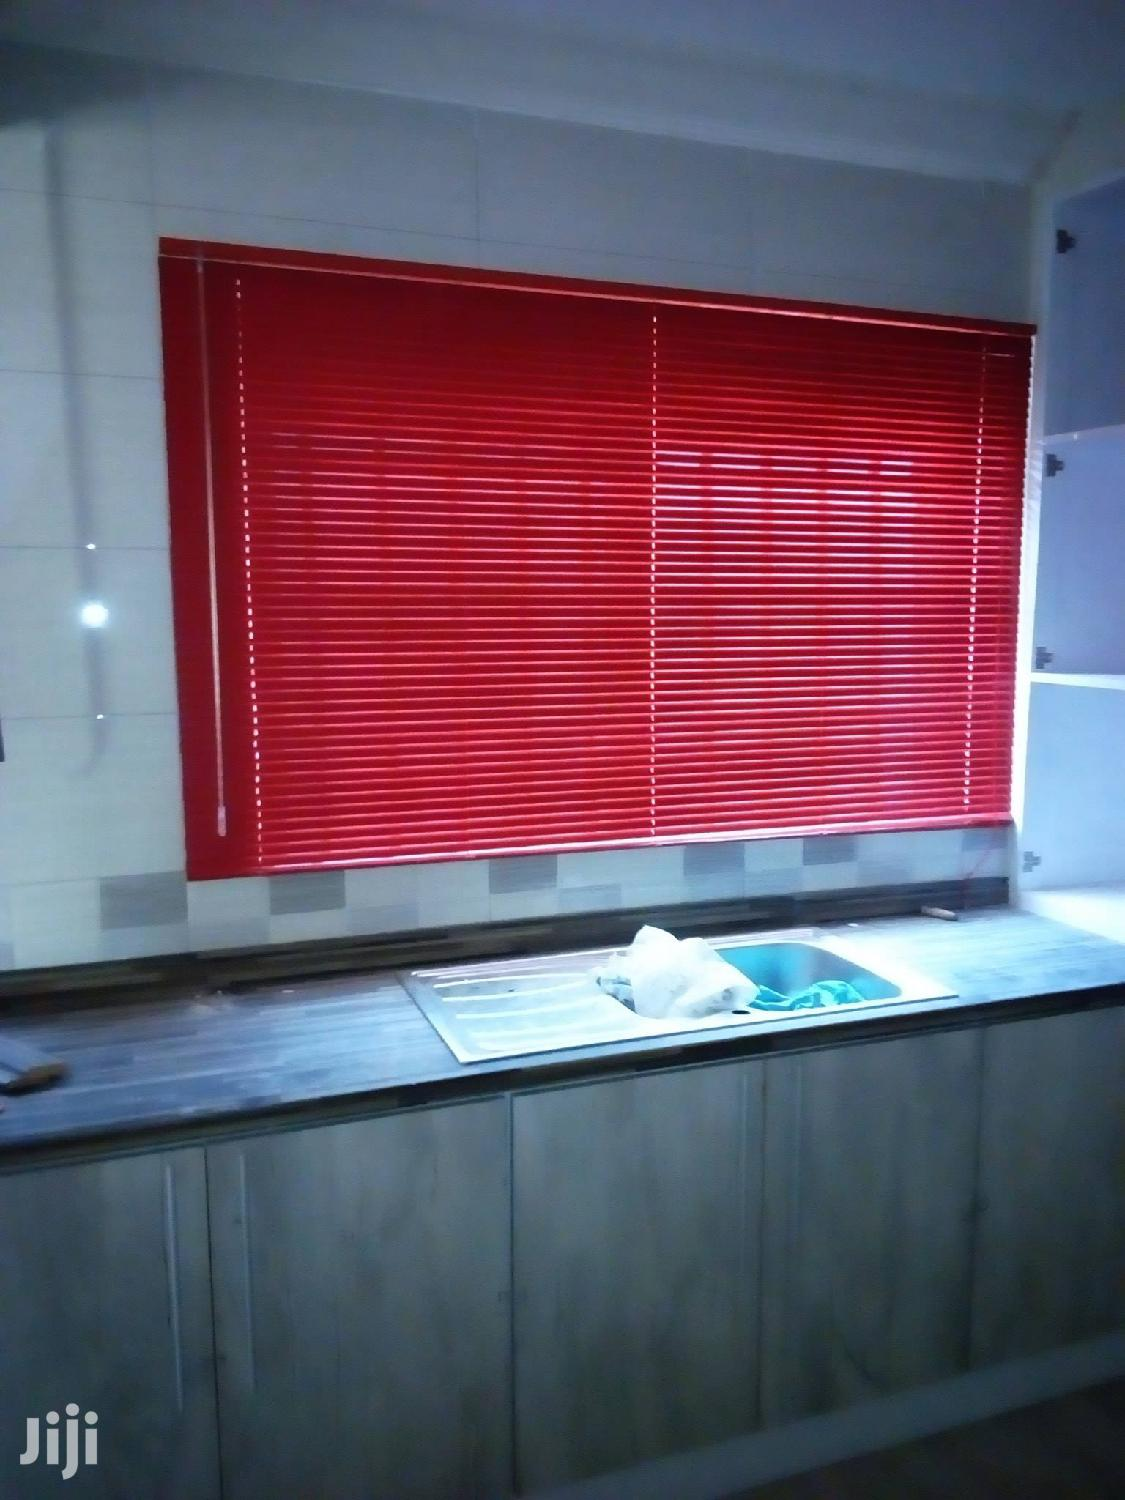 Window Blinds for Homes, Churches, Schools and Offices